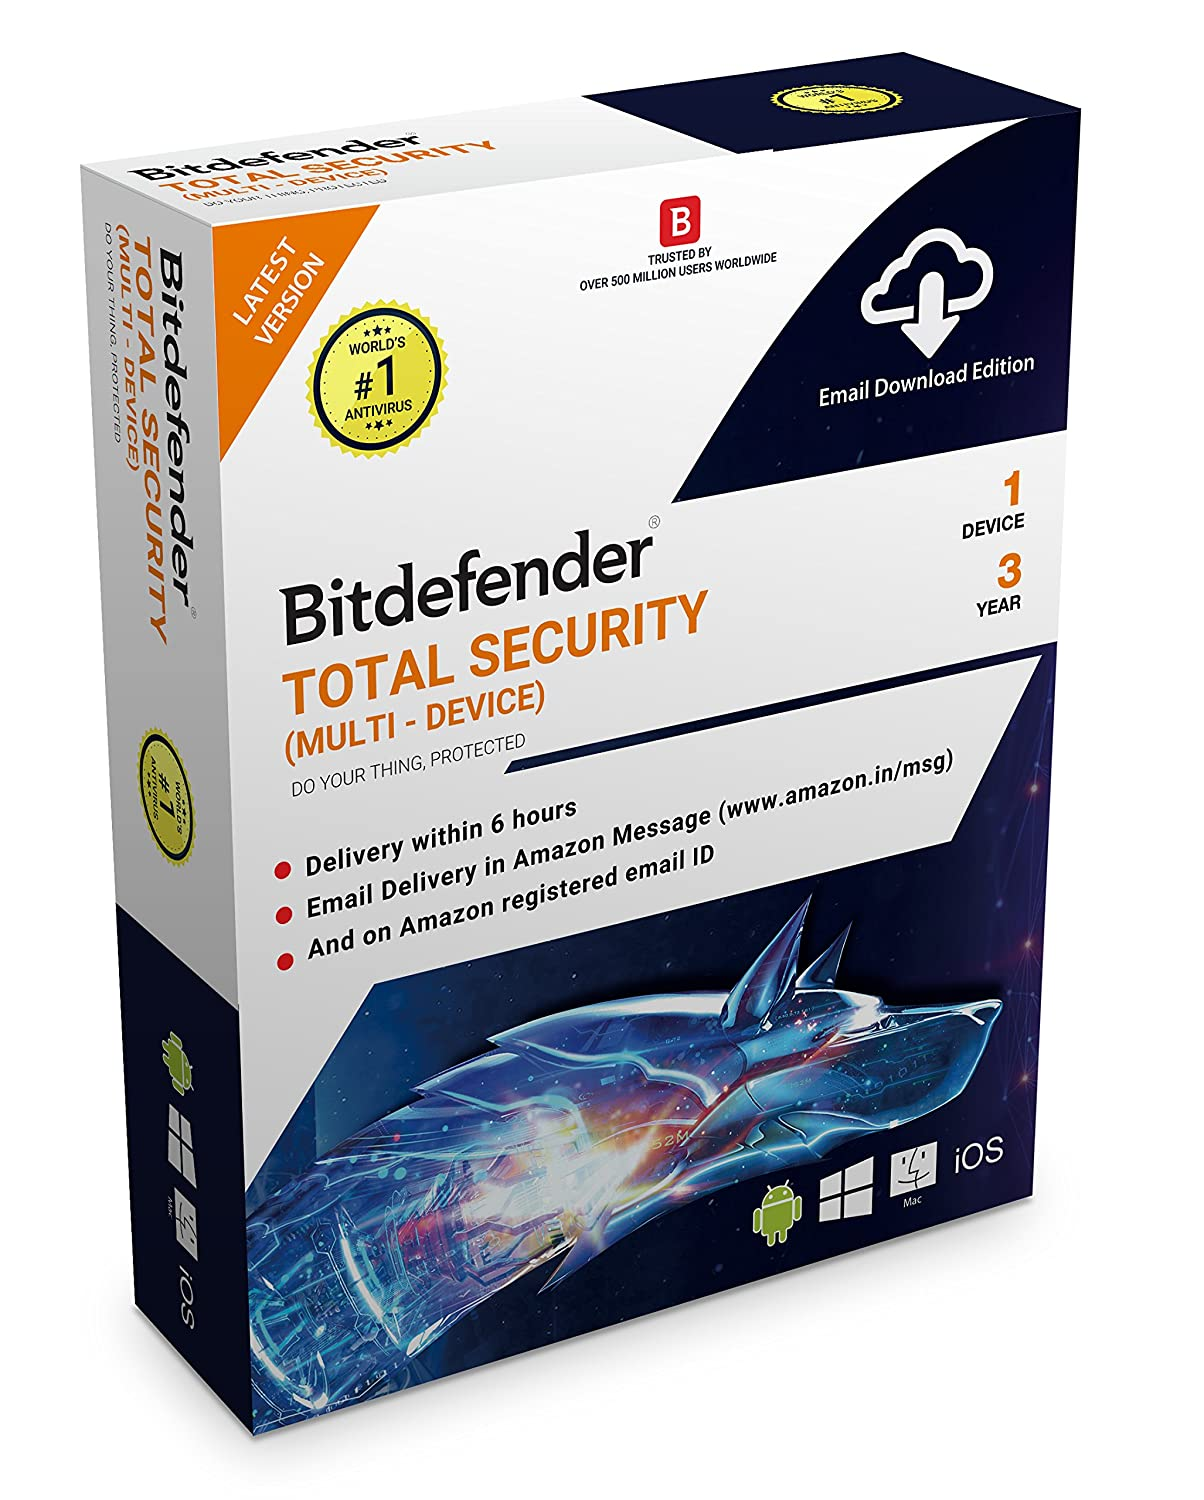 Bit Defender Total Security